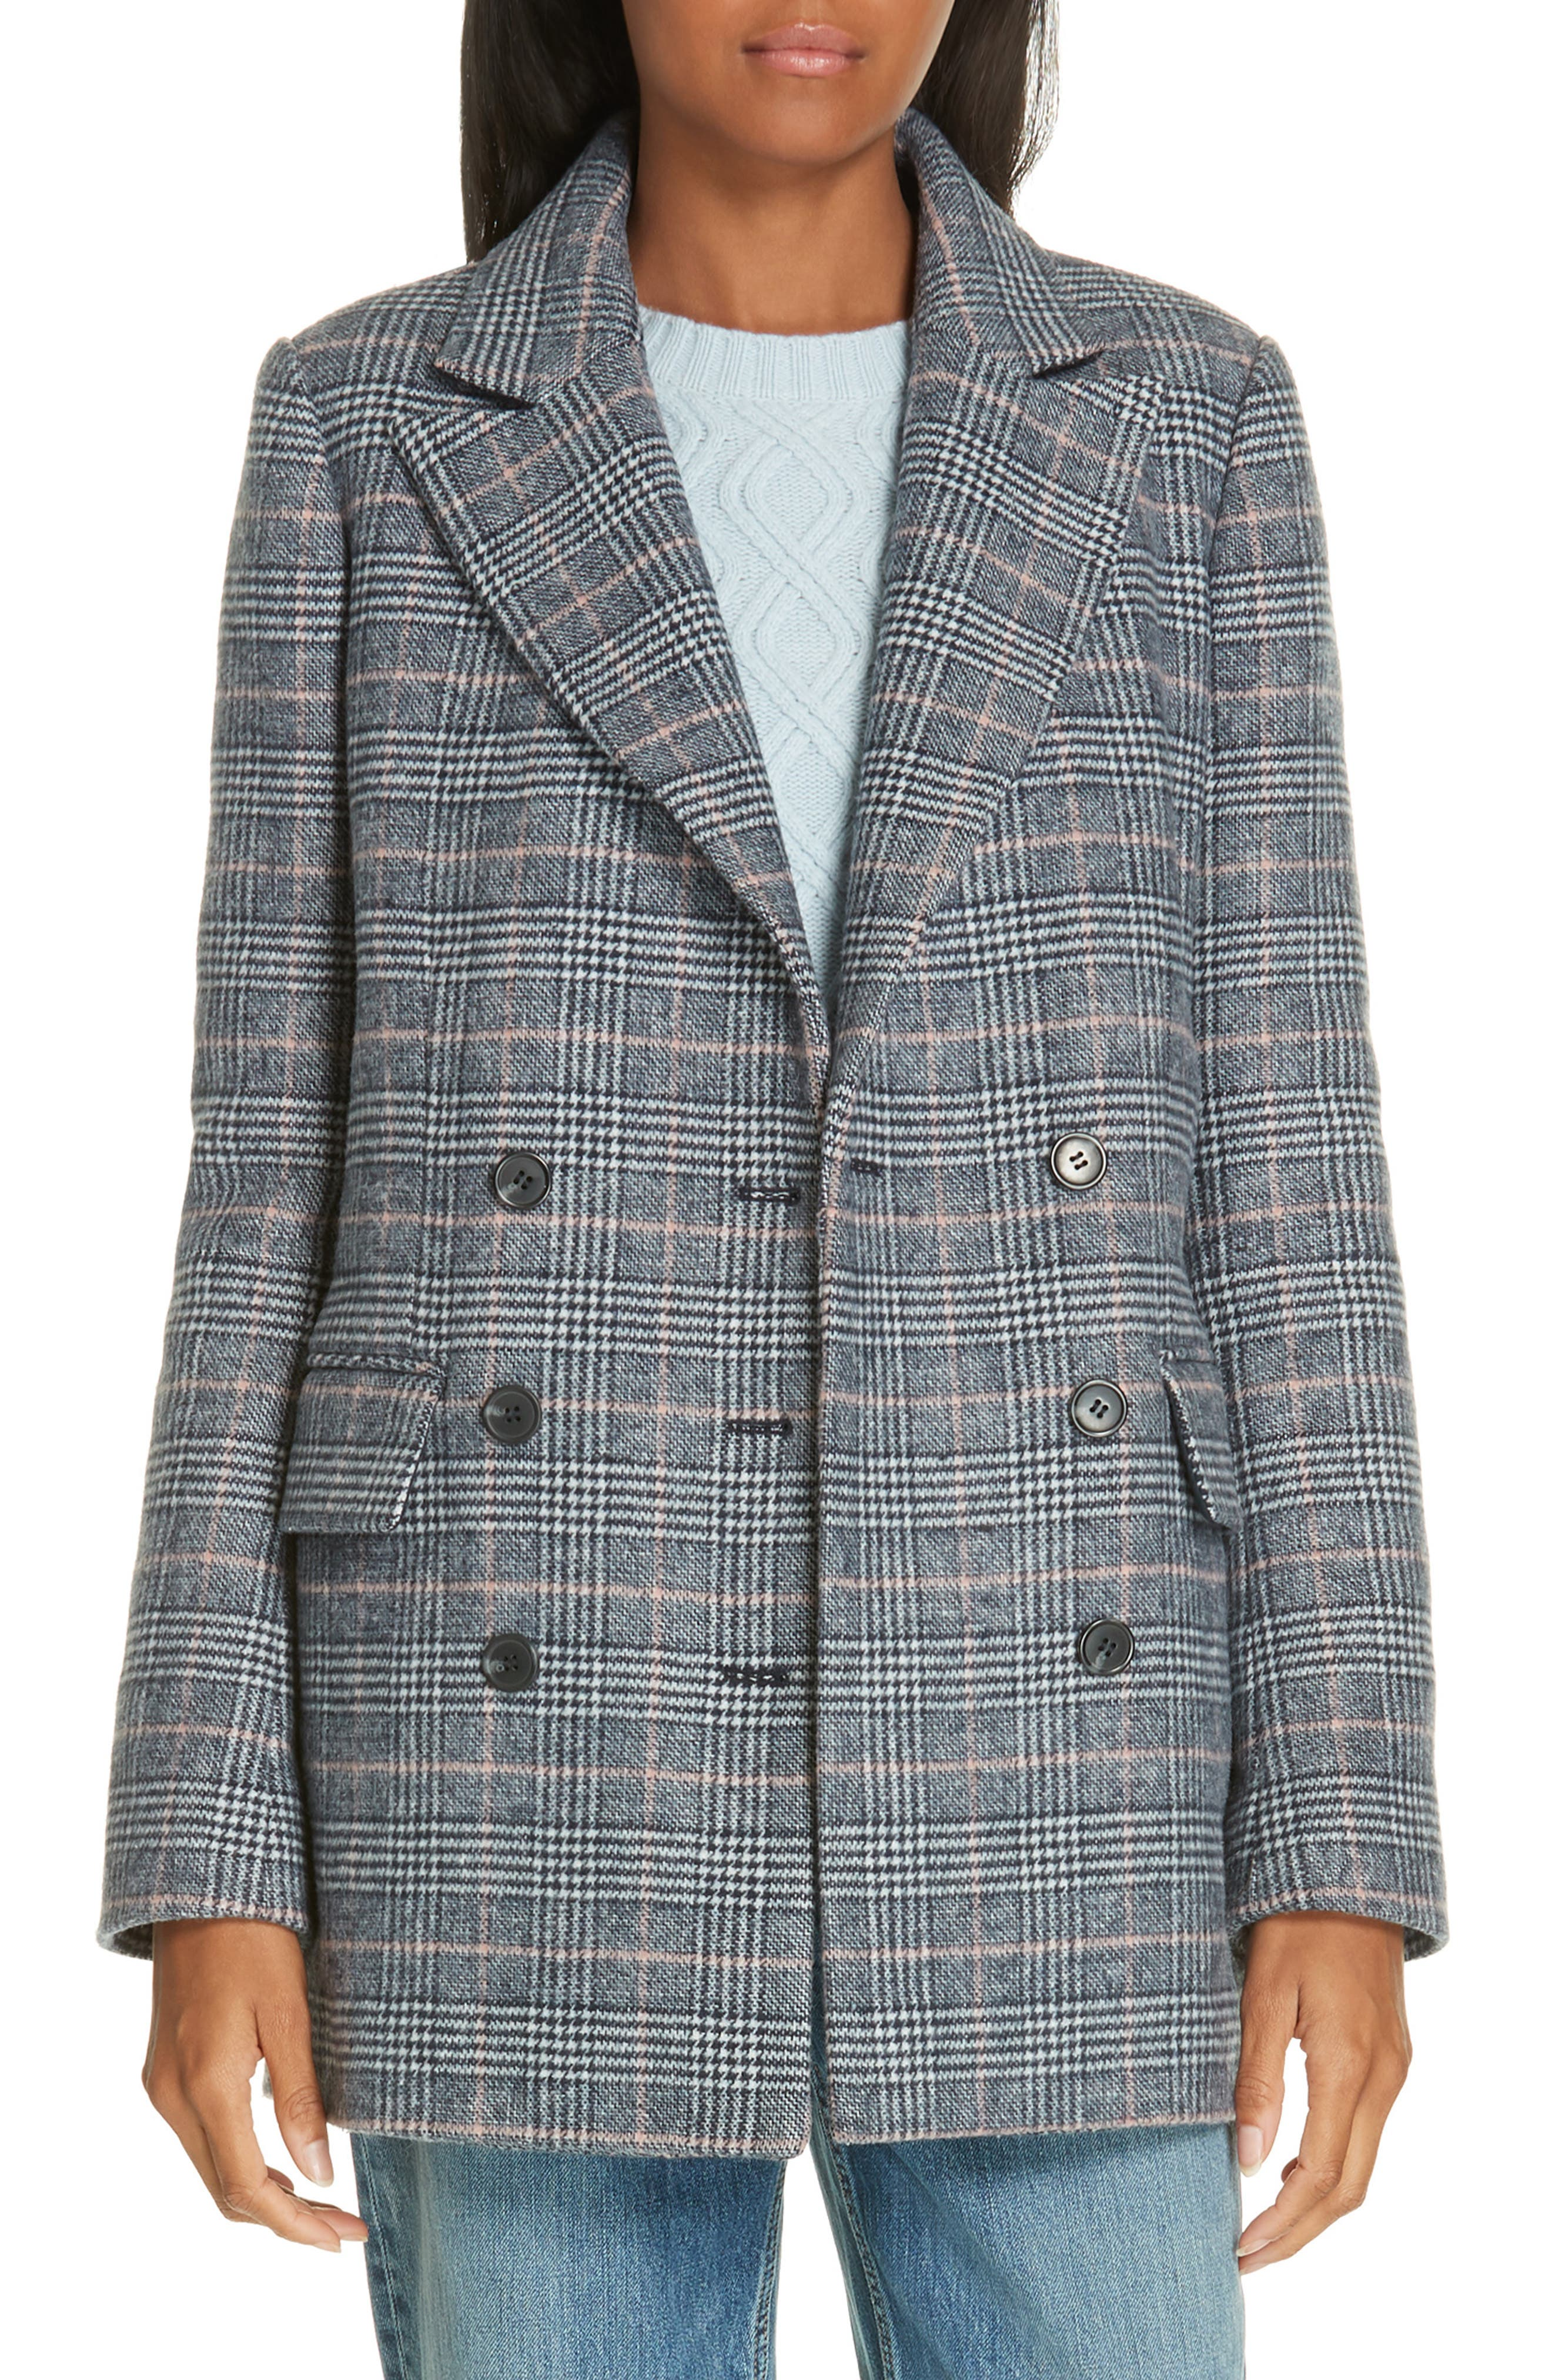 LA VIE REBECCA TAYLOR Plaid Double Breasted Wool Blend Jacket in Rose Quartz Combo